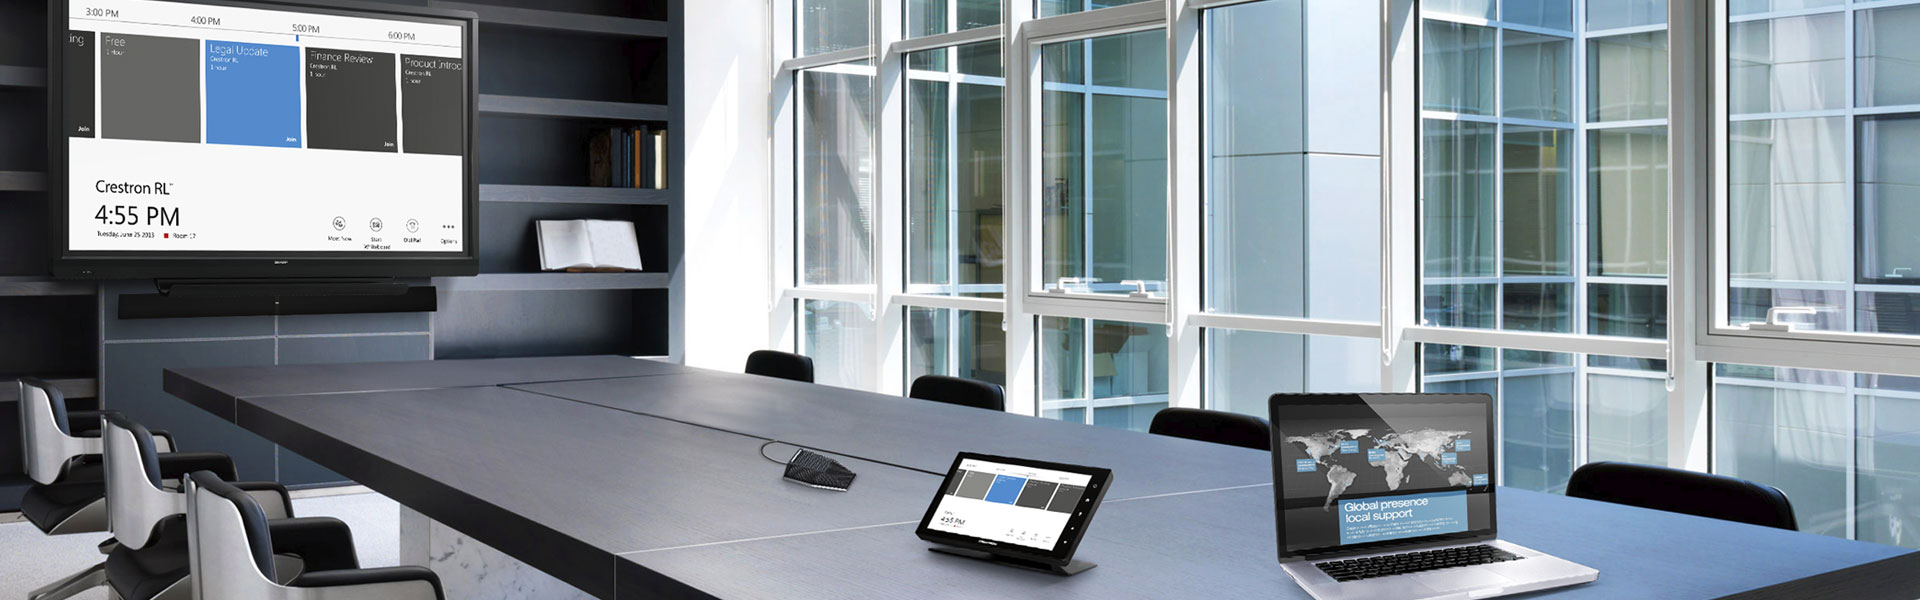 Conference rooms custom communication services llc conference rooms greentooth Image collections